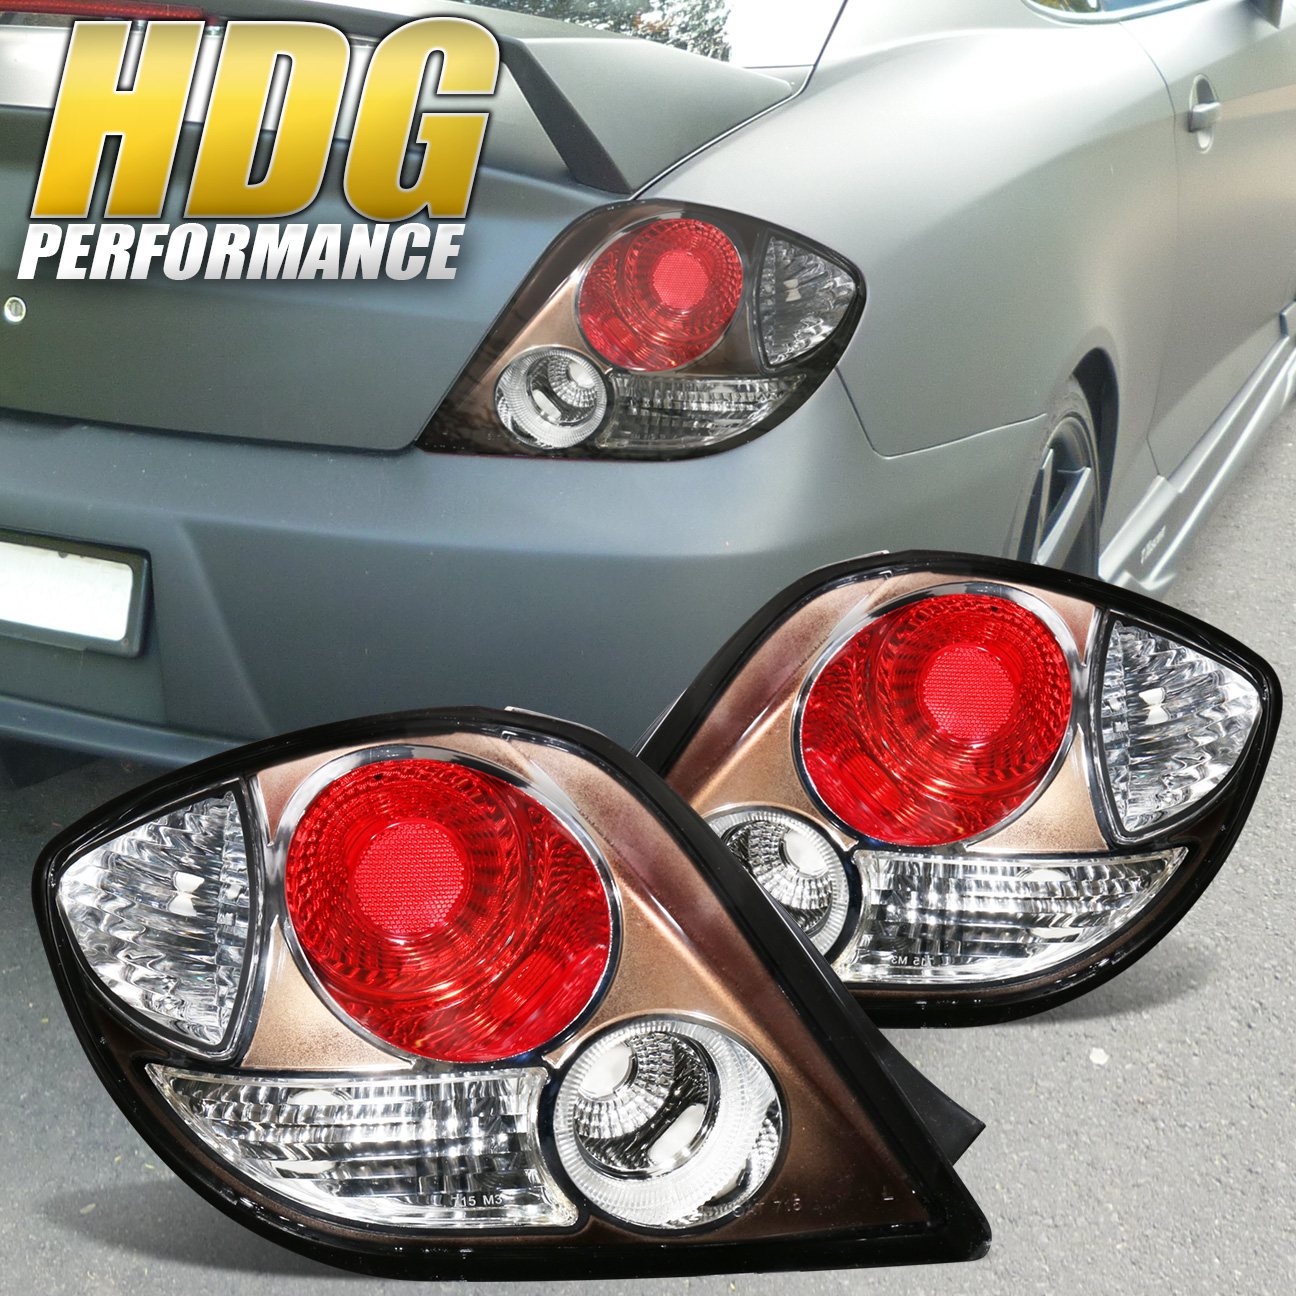 Details About For 2003 2005 Hyundai Tiburon Jdm Rare Anium Housing Tail Light Replacement